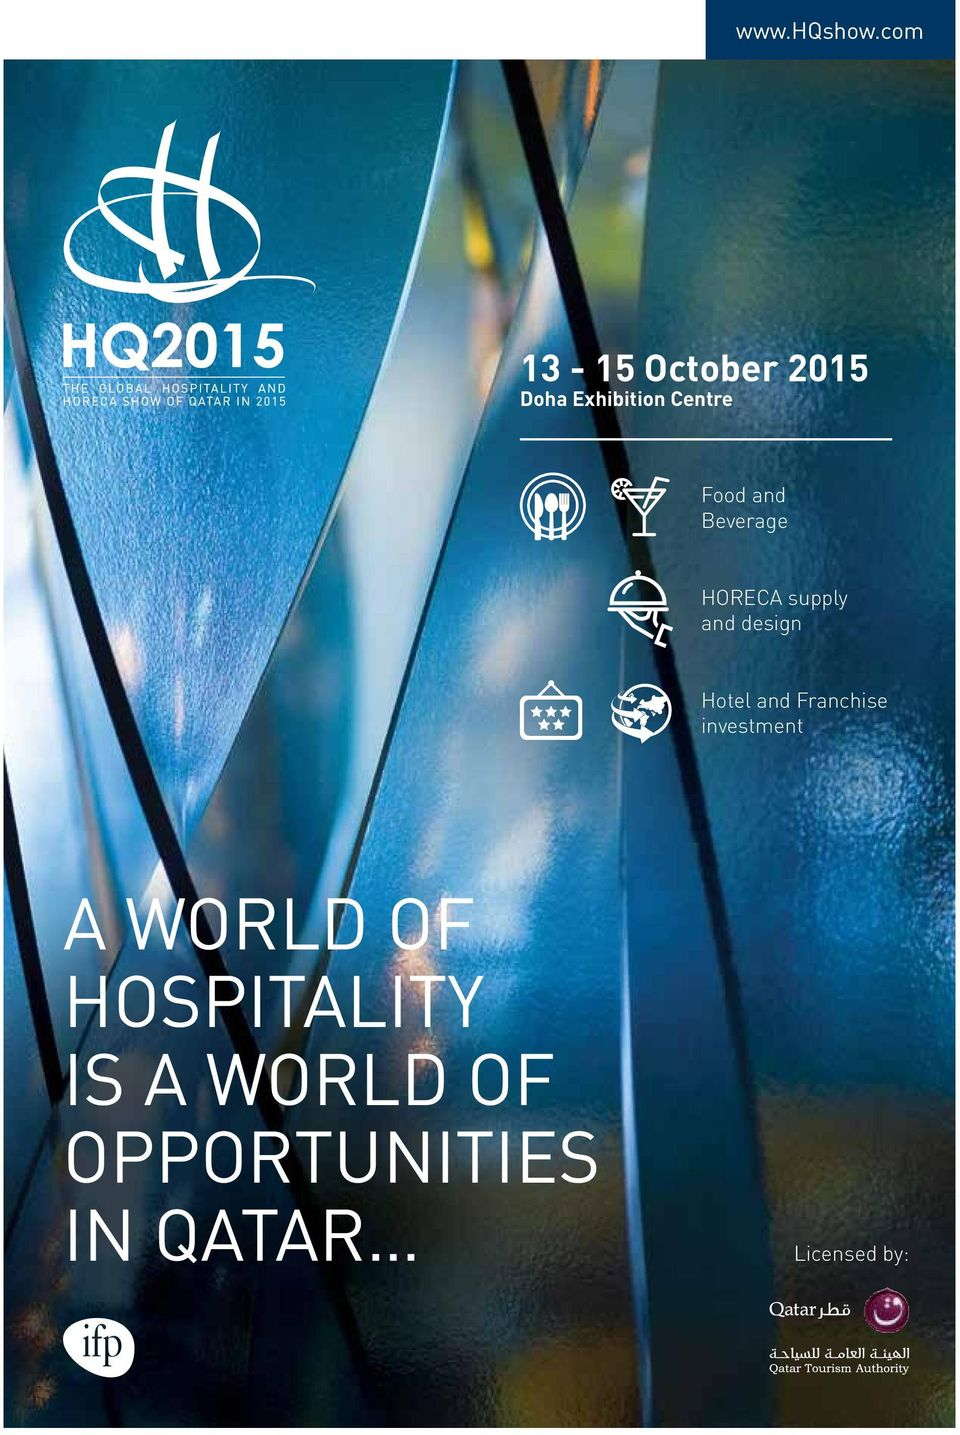 and Beverage HORECA supply and design Hotel and